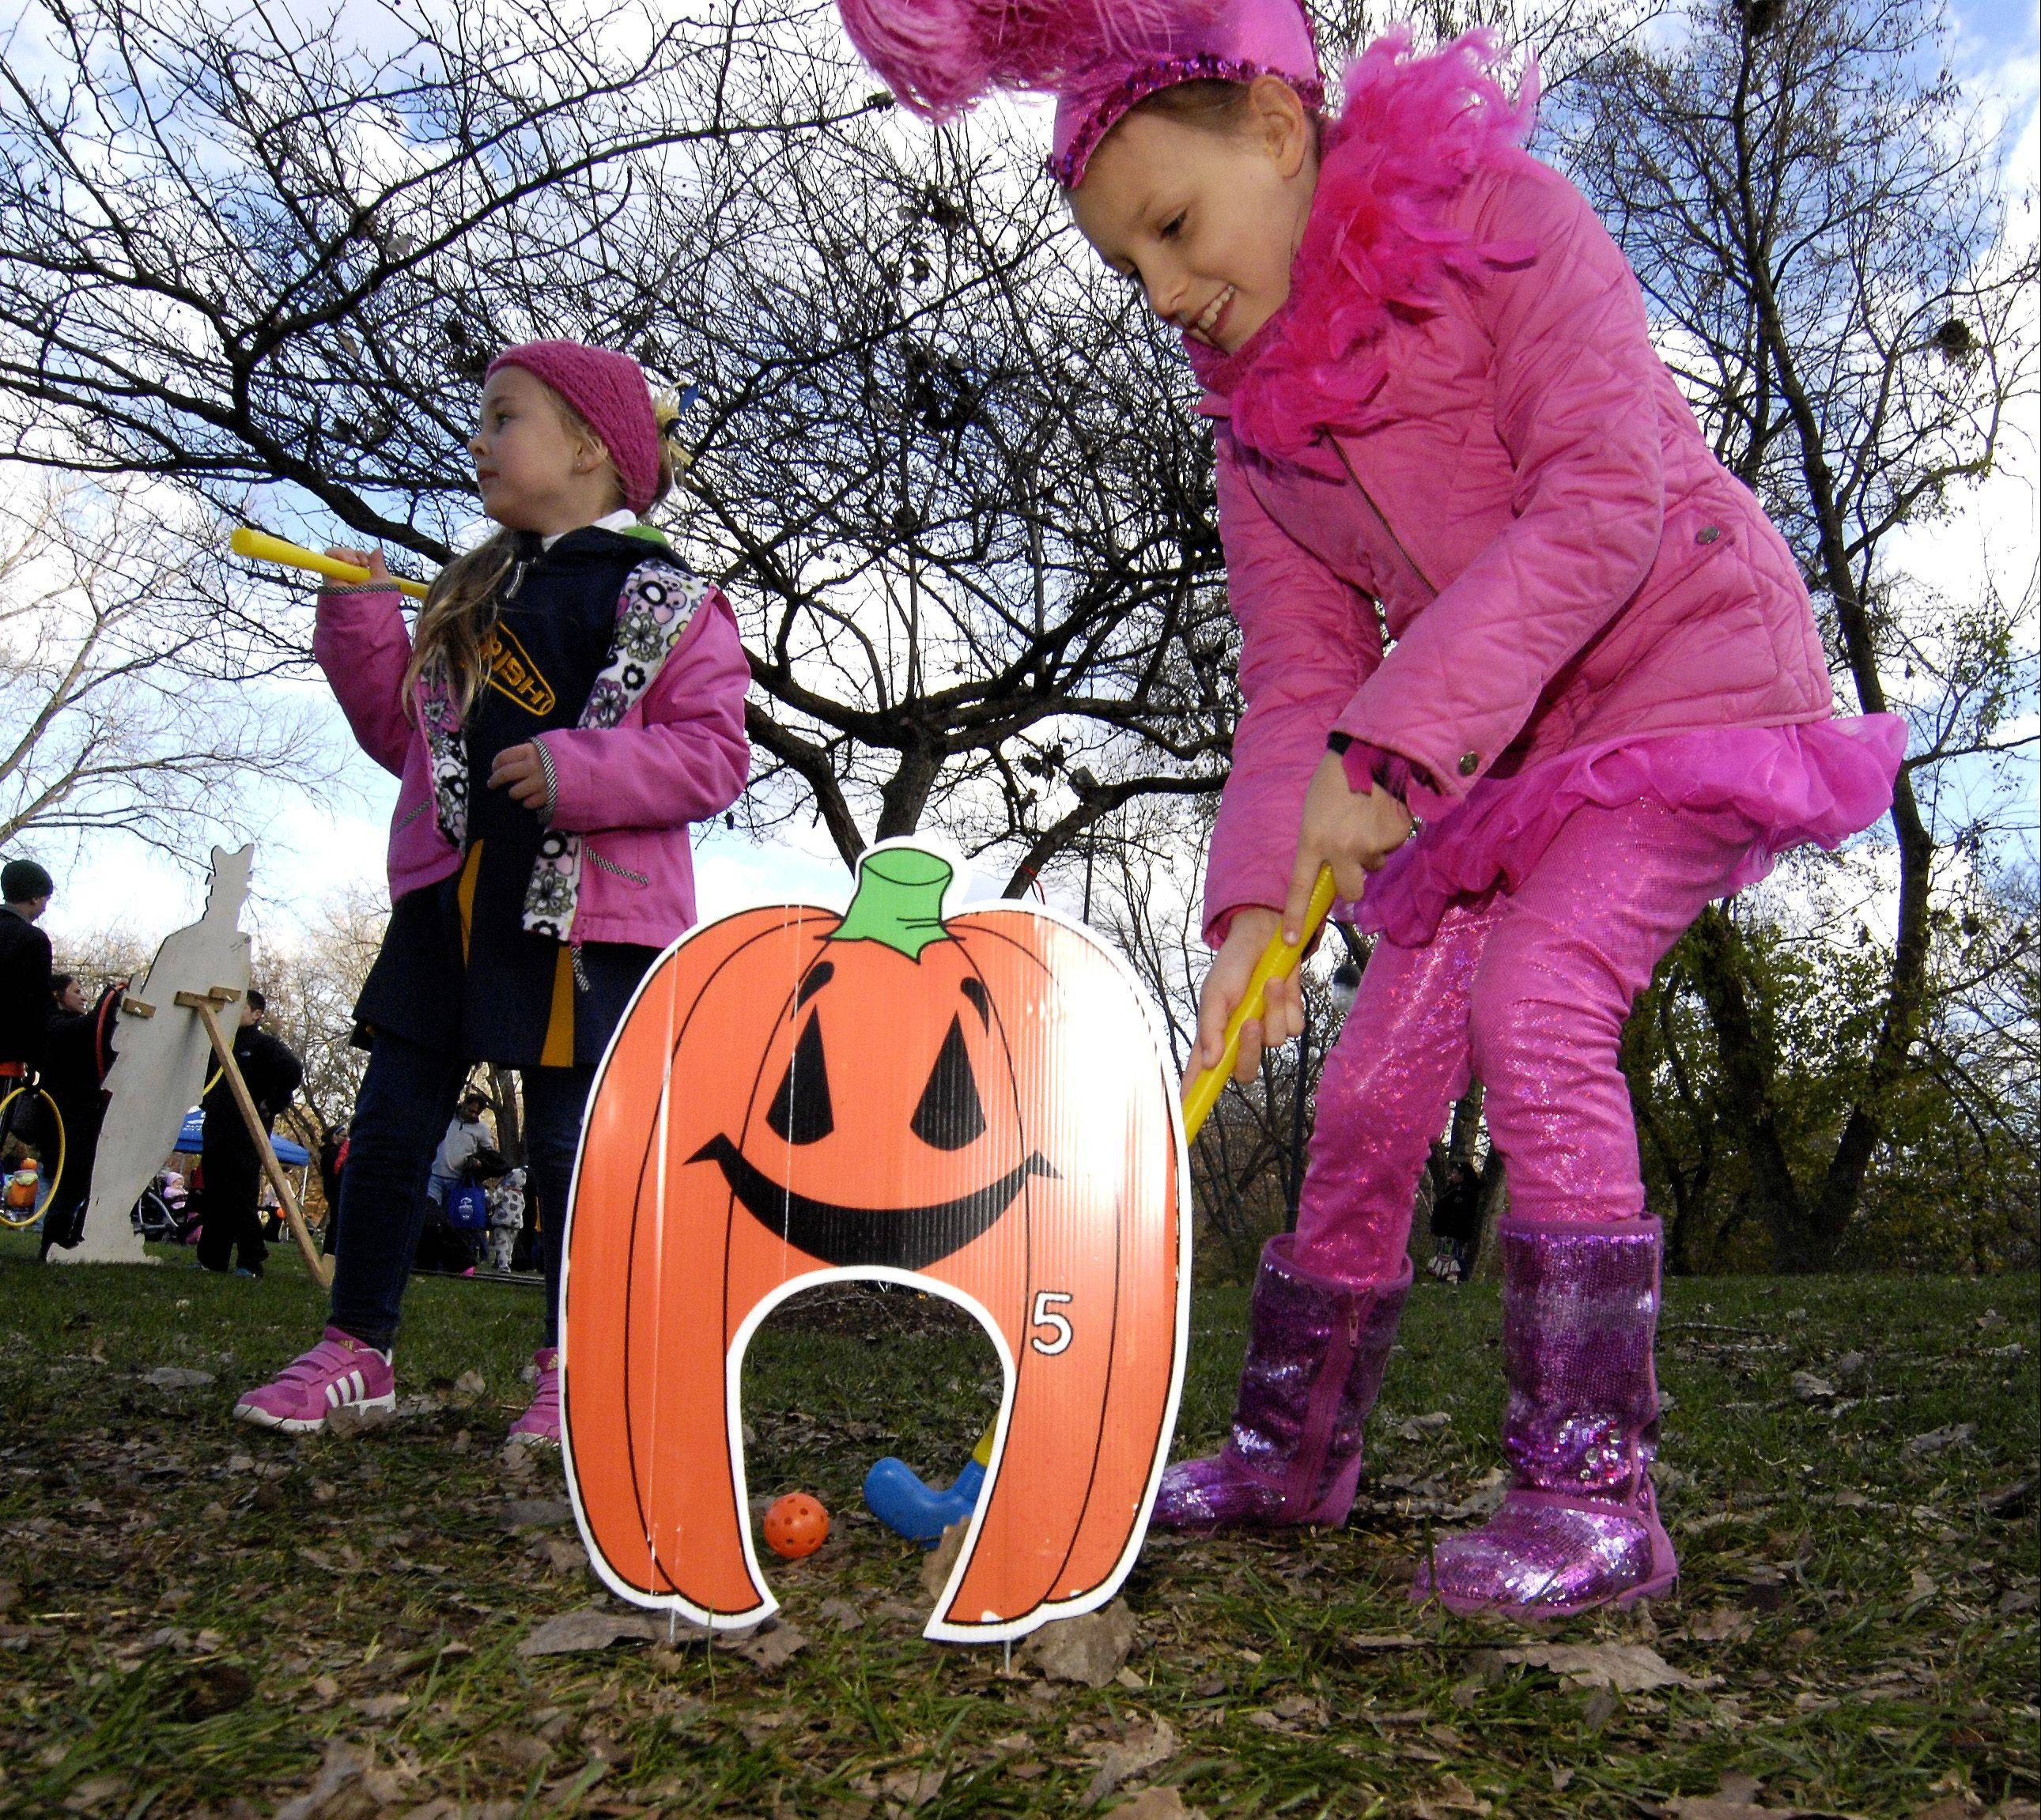 Victoria Blasko, 8, putts through a jack-o�-lantern while Sofia Bargen, 6, waits her turn during the Naperville Park District�s Halloween Happening Sunday at the Grand Pavilion. Other events in downtown Naperville included trick-or-treating and the Naperville Park District�s Halloween Happening at the Grand Pavilion.